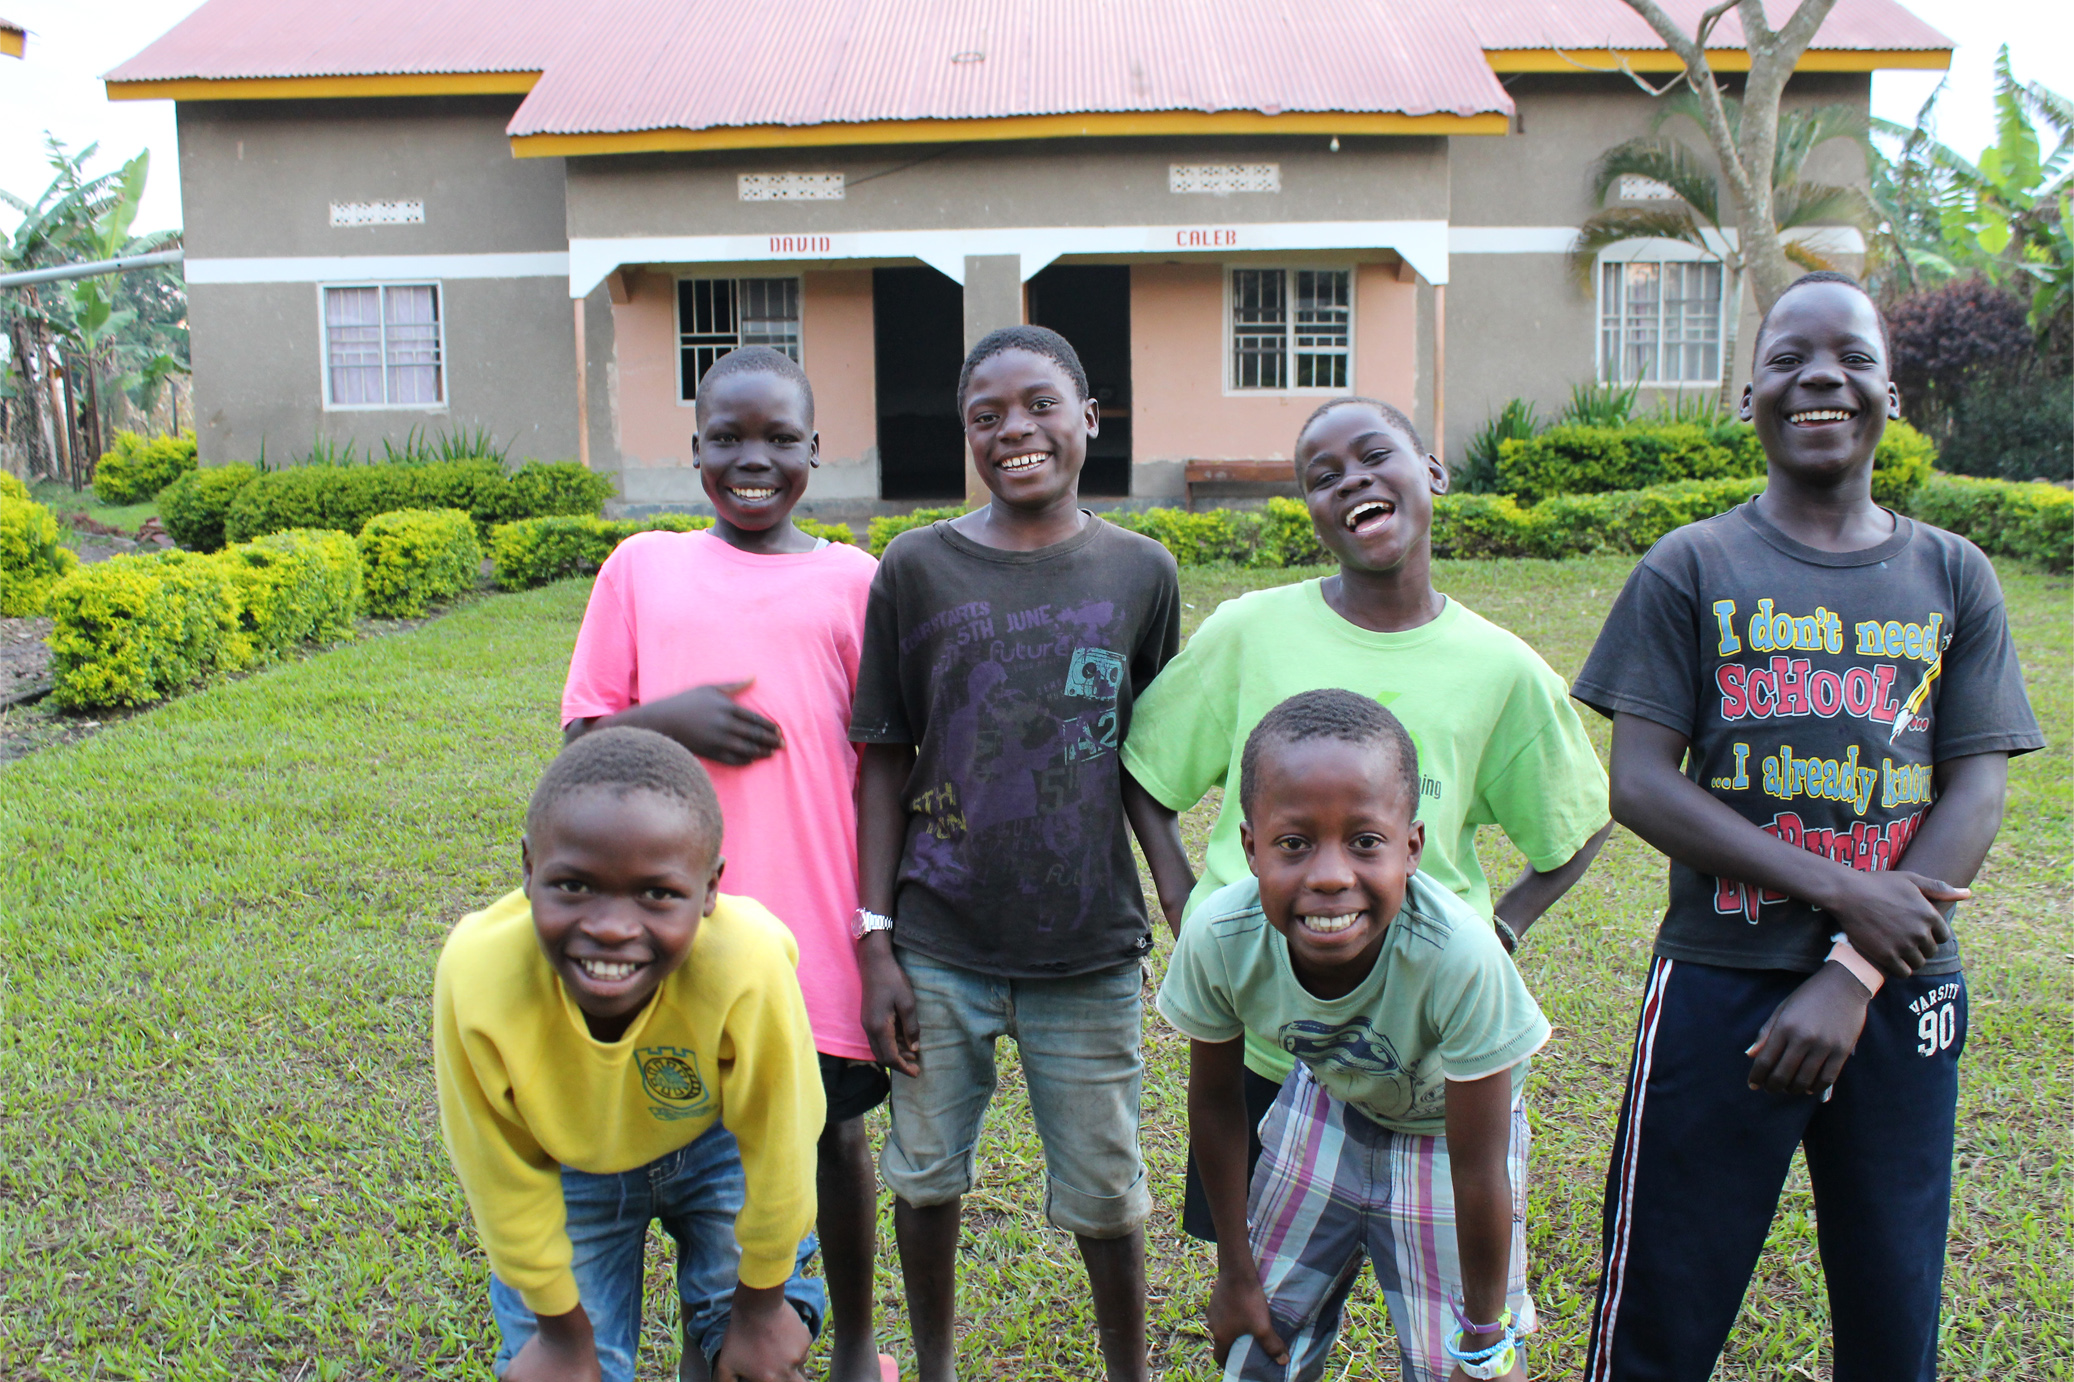 Abaana - New Life for 6 Street Kids